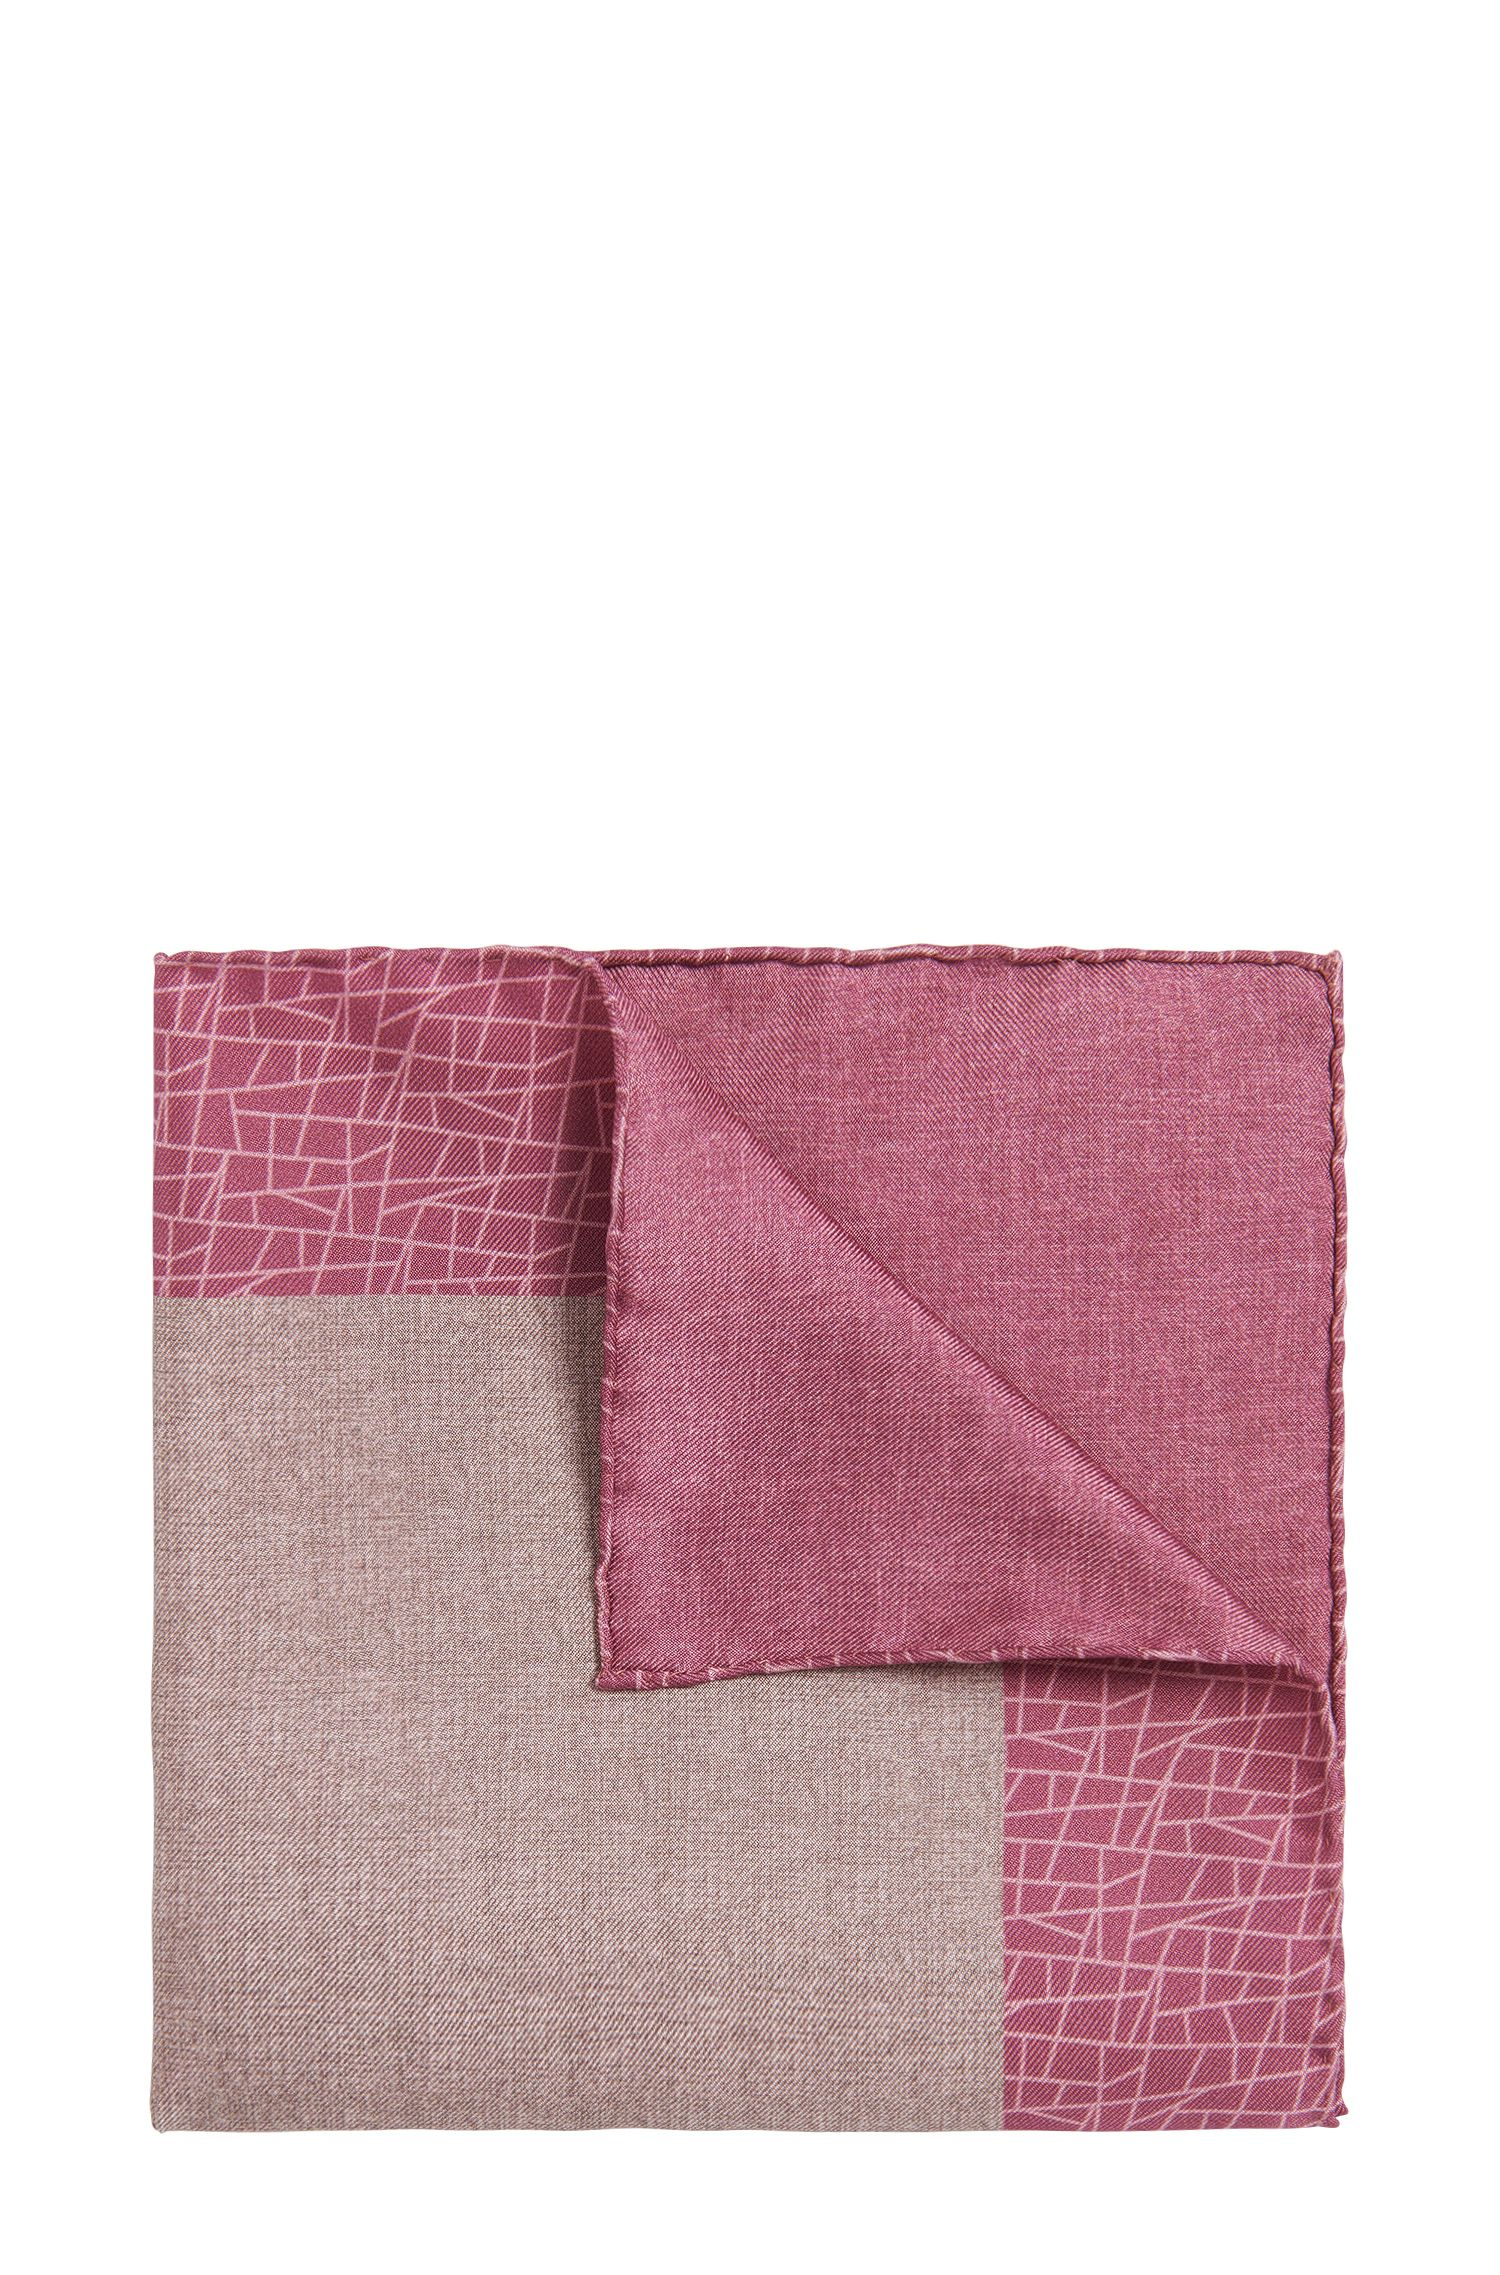 BOSS Tailored Italian Silk Pocket Square, Pink